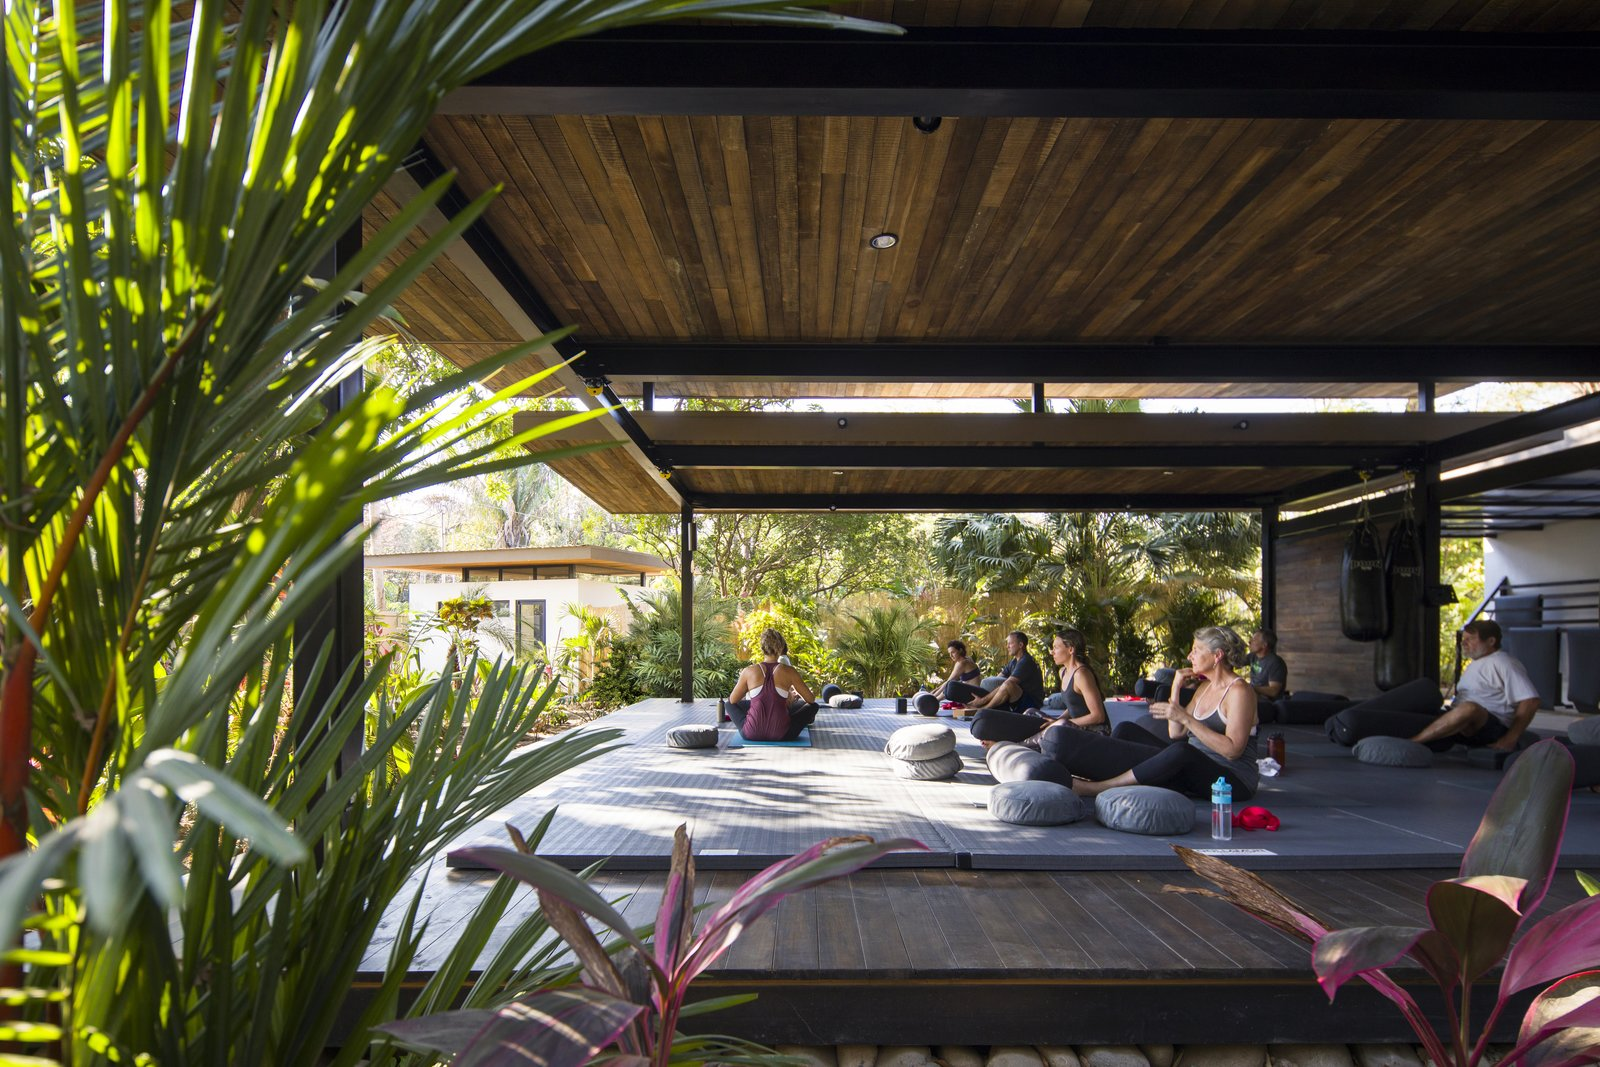 Outdoor, Large Patio, Porch, Deck, Wood Patio, Porch, Deck, and Shrubs The tropical modernism of the resort provides the perfect backdrop for exercise and relaxation in the Costa Rican jungle.  Photo 11 of 11 in Decompress at This Boutique Hotel and Yoga Retreat in the Costa Rican Jungle